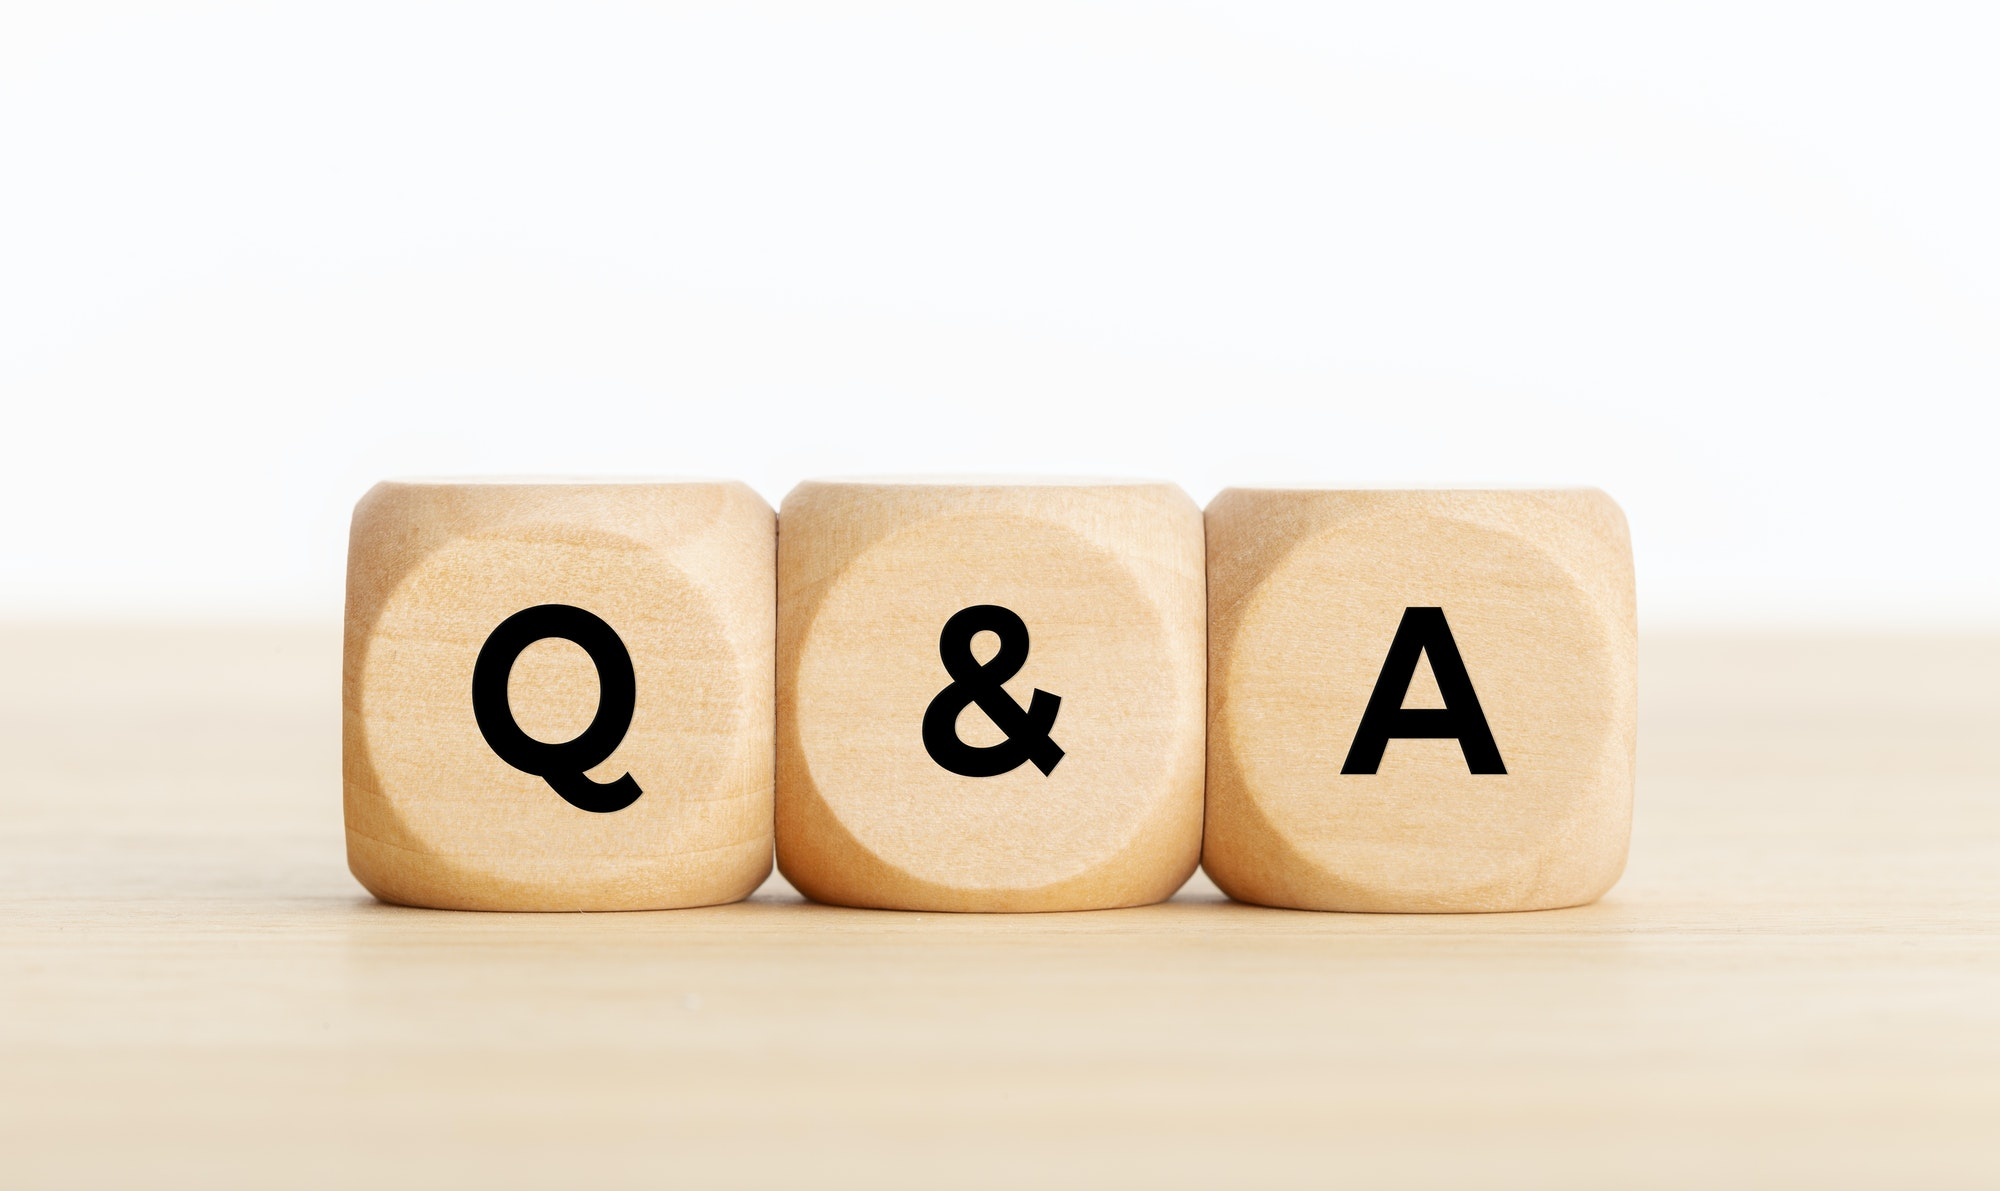 Q&A or questions and answers concept